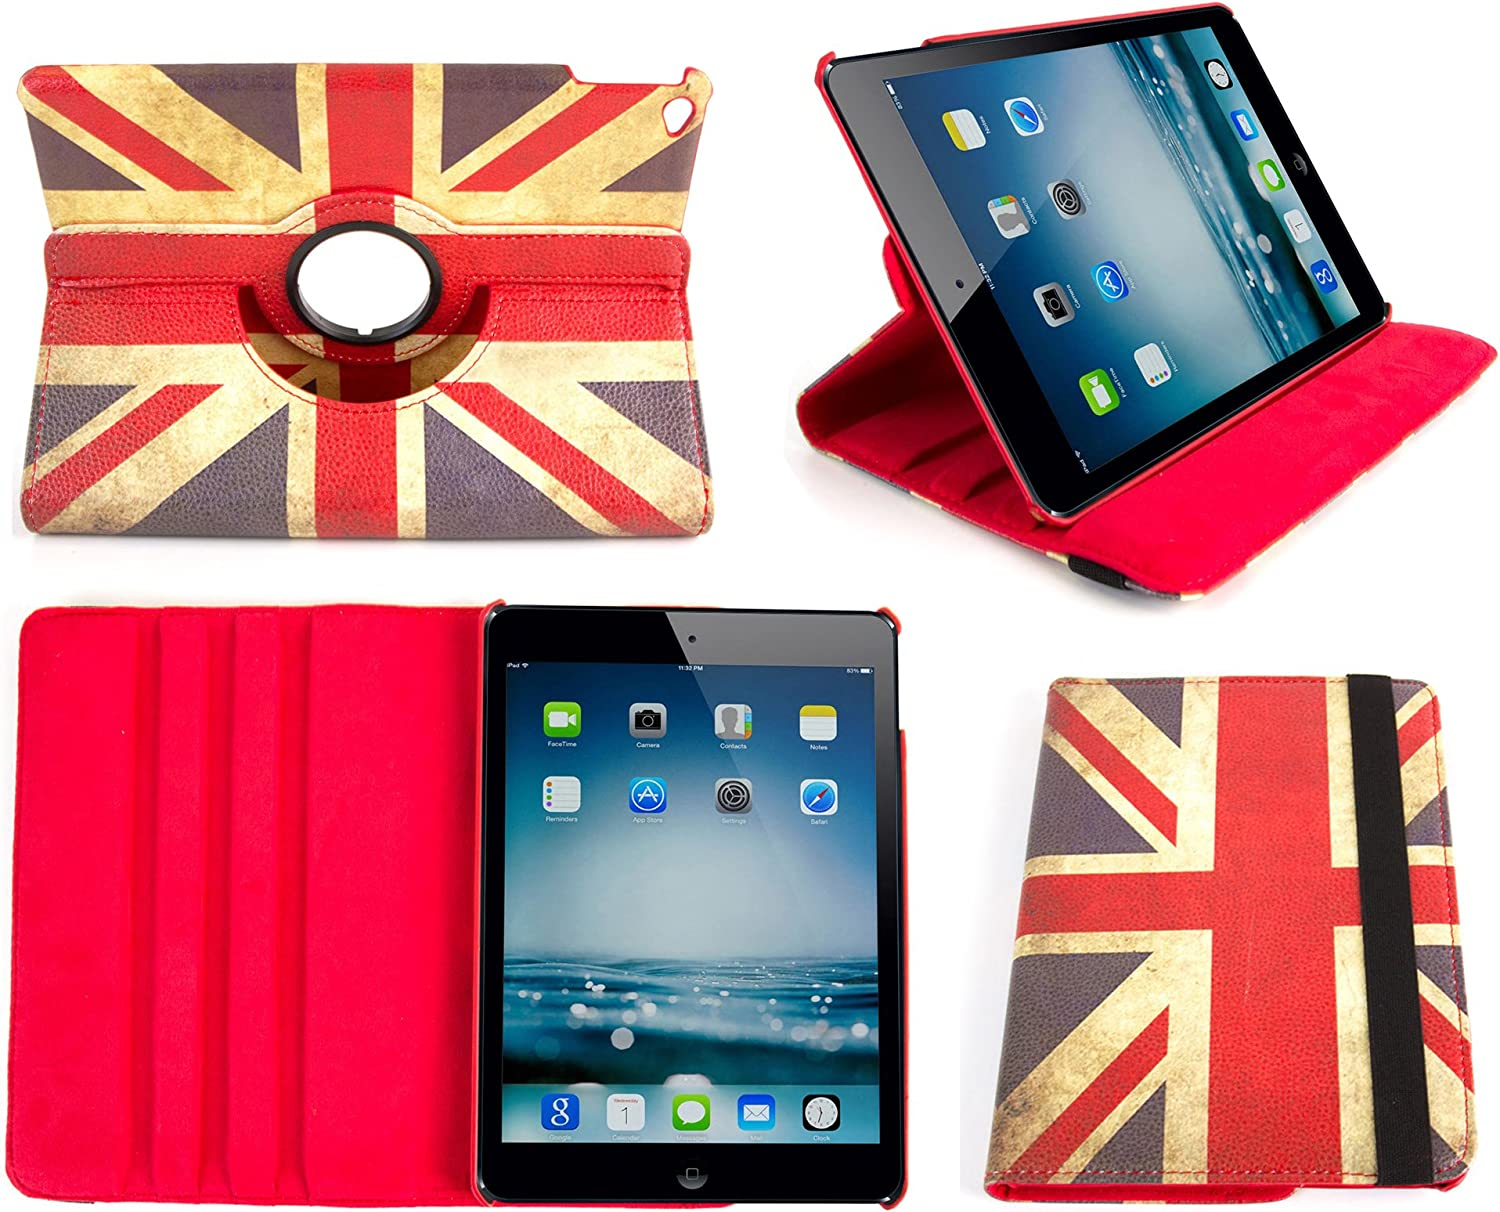 "DURAGADGET Apple iPad Air 2 Case - 'Union Jack' Print 360° Rotating Folio Case with Kick-Stand in Faux Leather for Apple iPad Air 2 (2015 ed, WiFi, LTE, 3G, 16GB, 32GB, 64GB, 9.7"", A8X)"